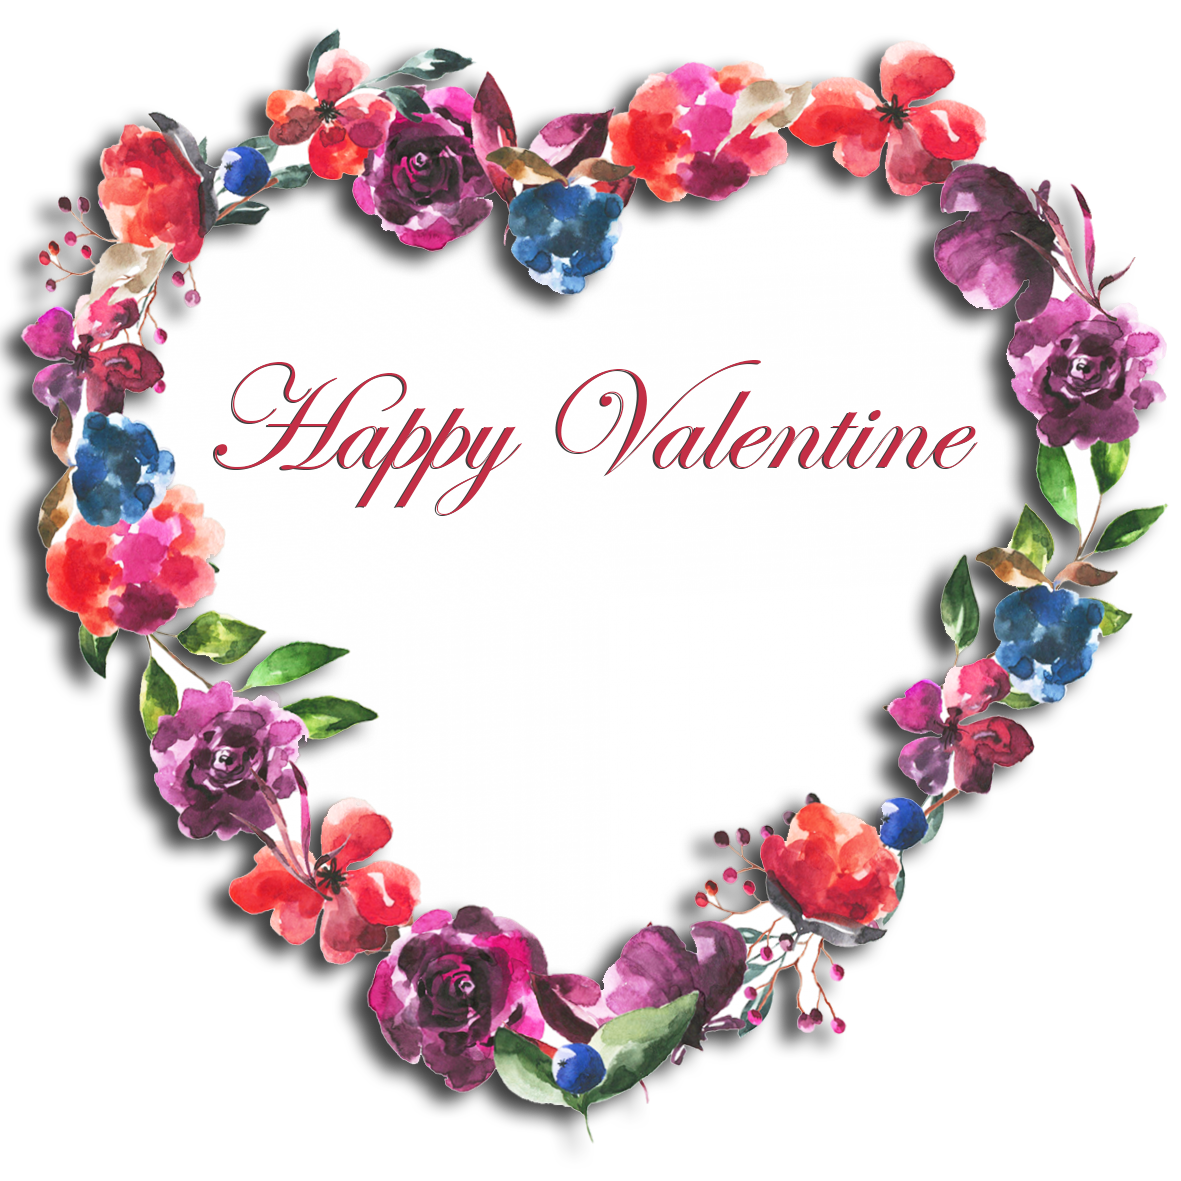 floral Happy Valenting greeting